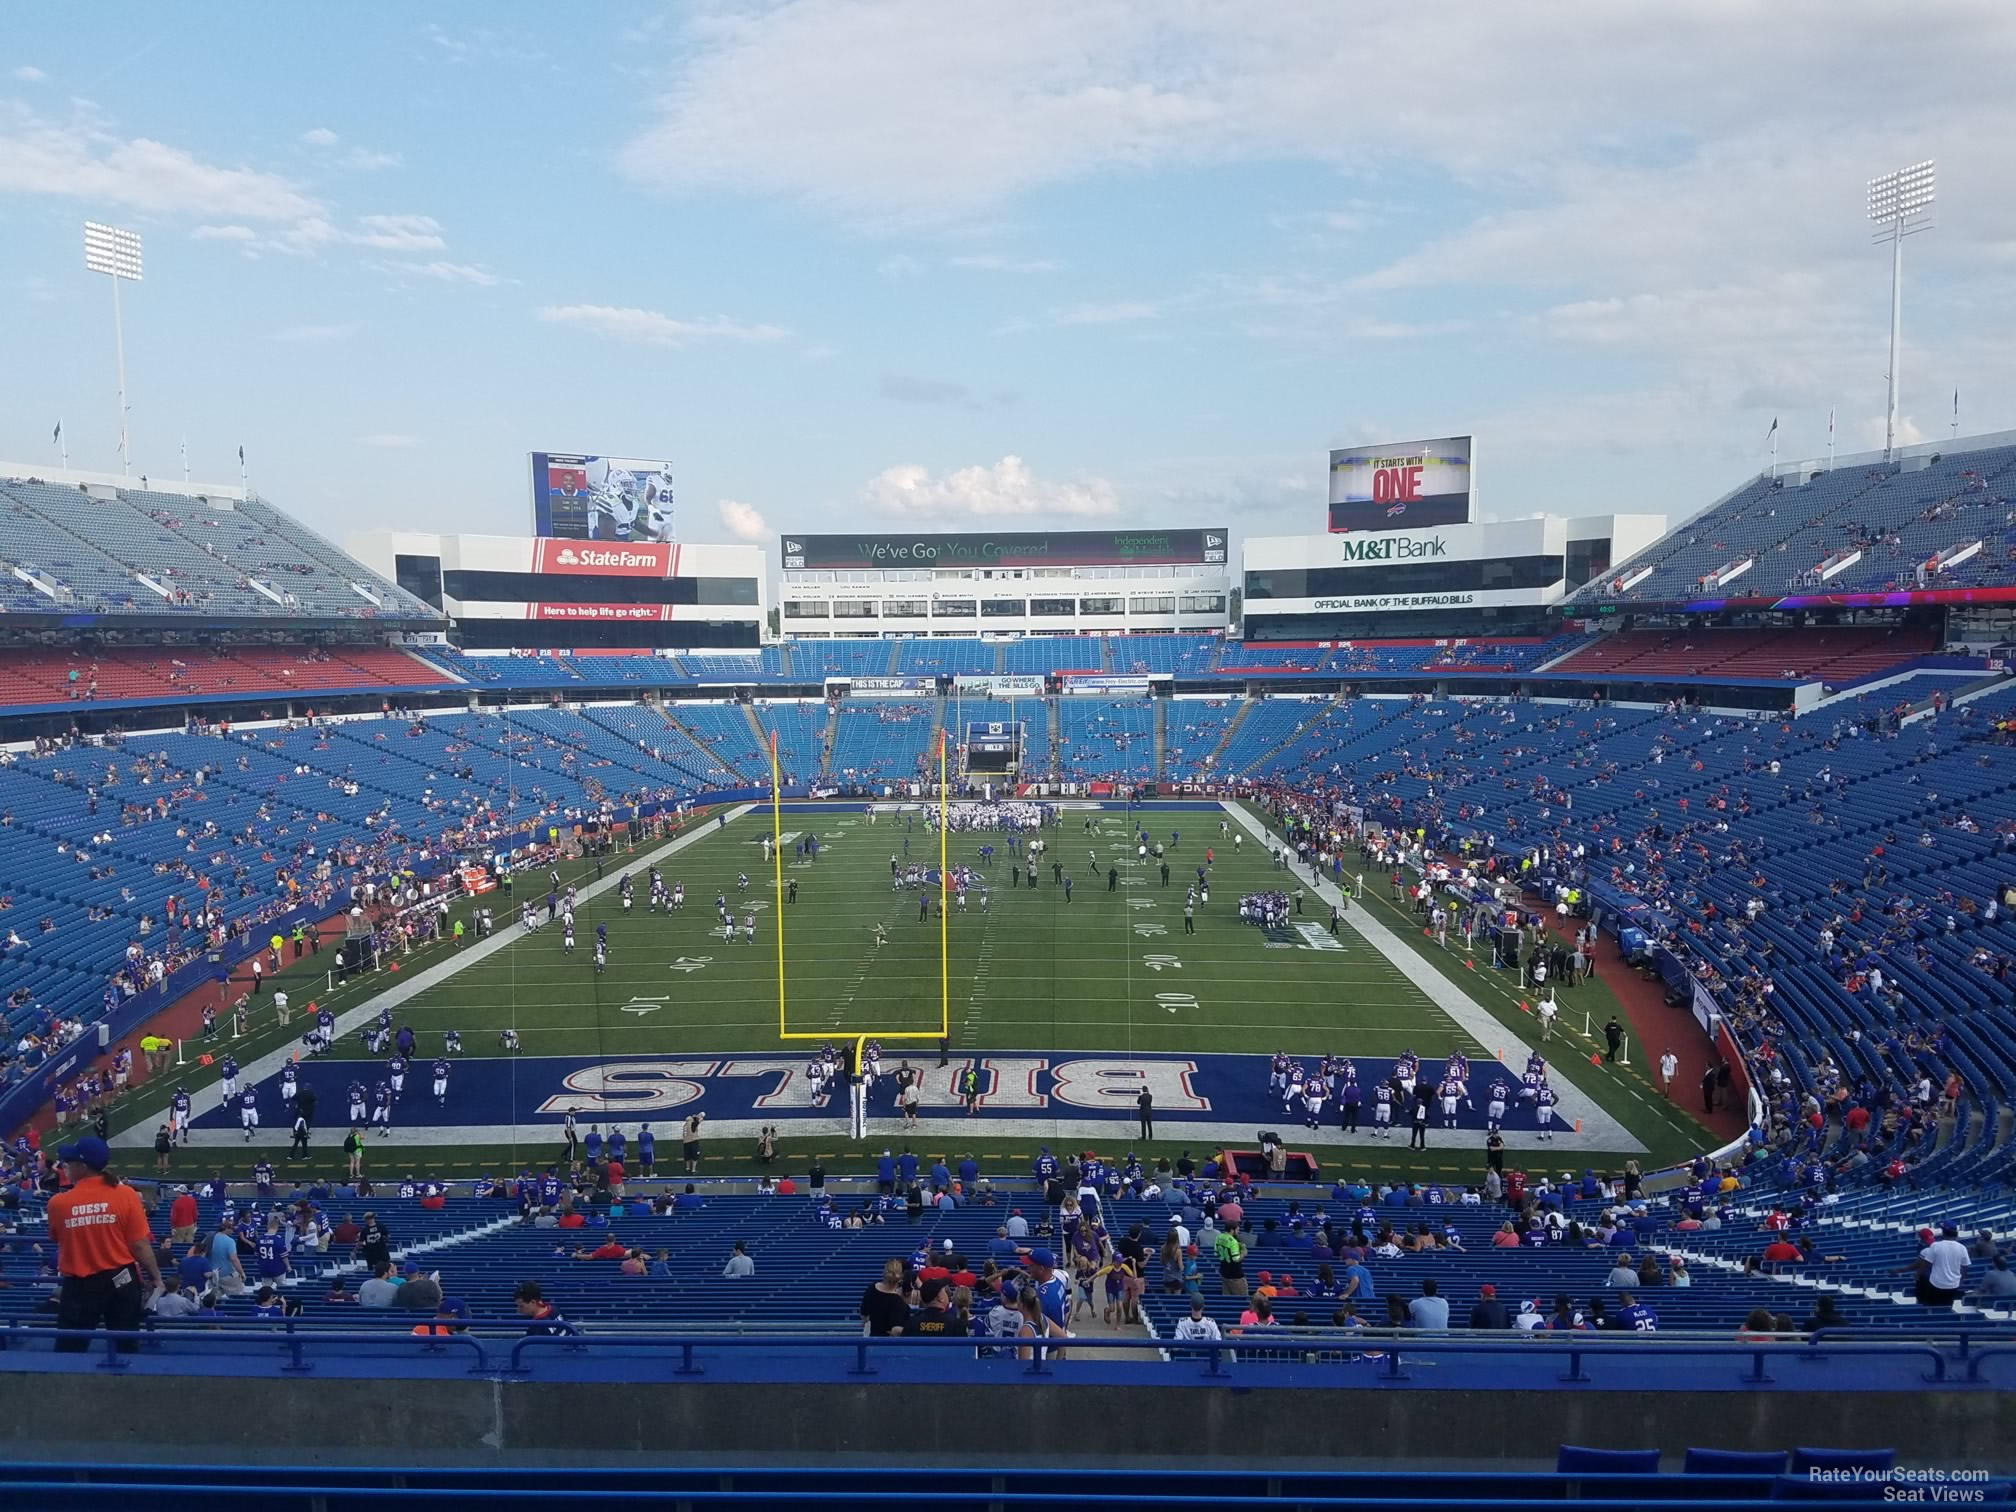 Section 244 seat view